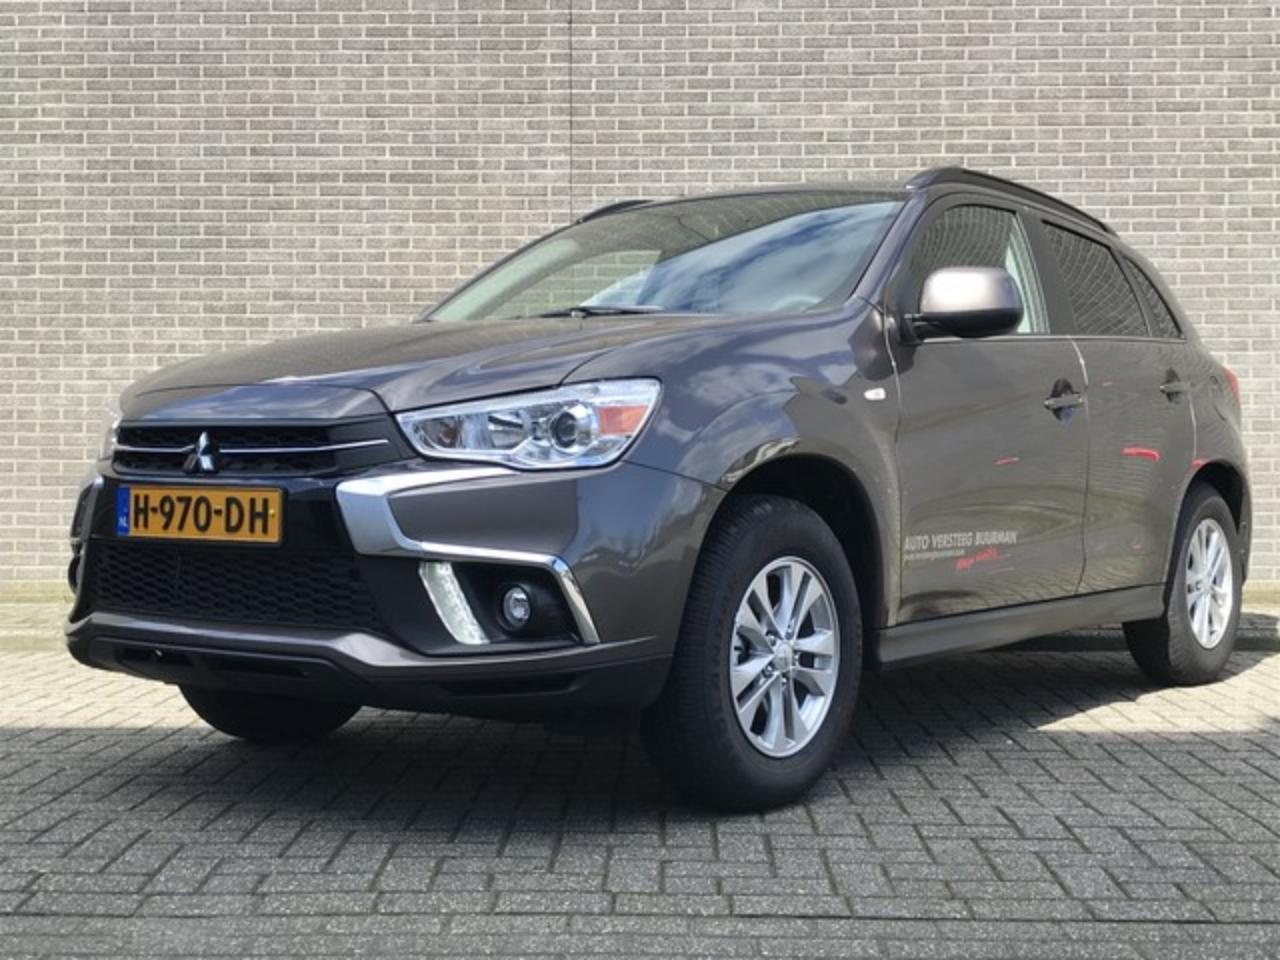 Mitsubishi Asx 1.6 Cleartec Life Climate Control, Parkeersensoren